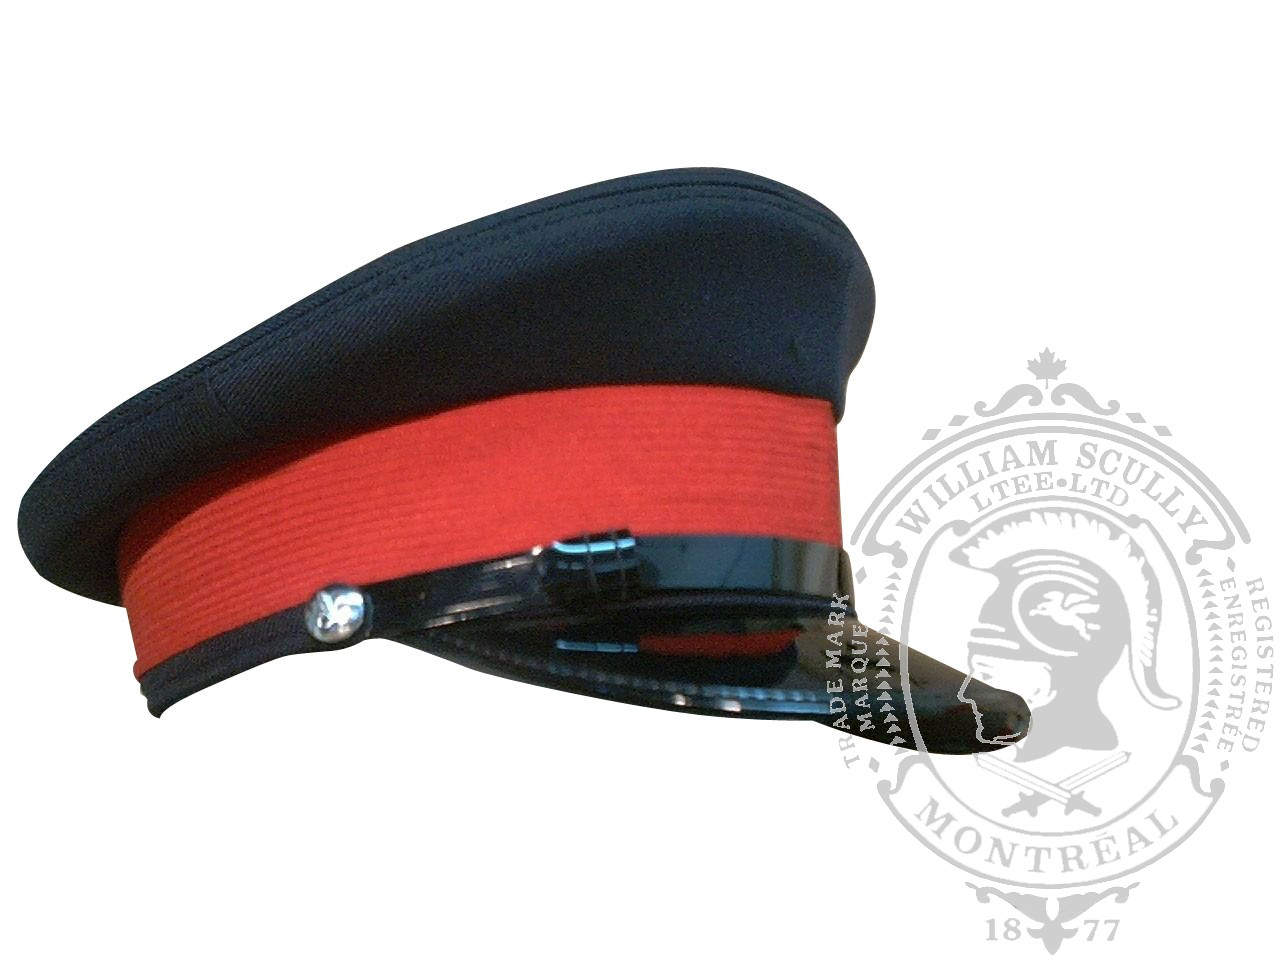 2-2004 Police Constable Uniform Cap